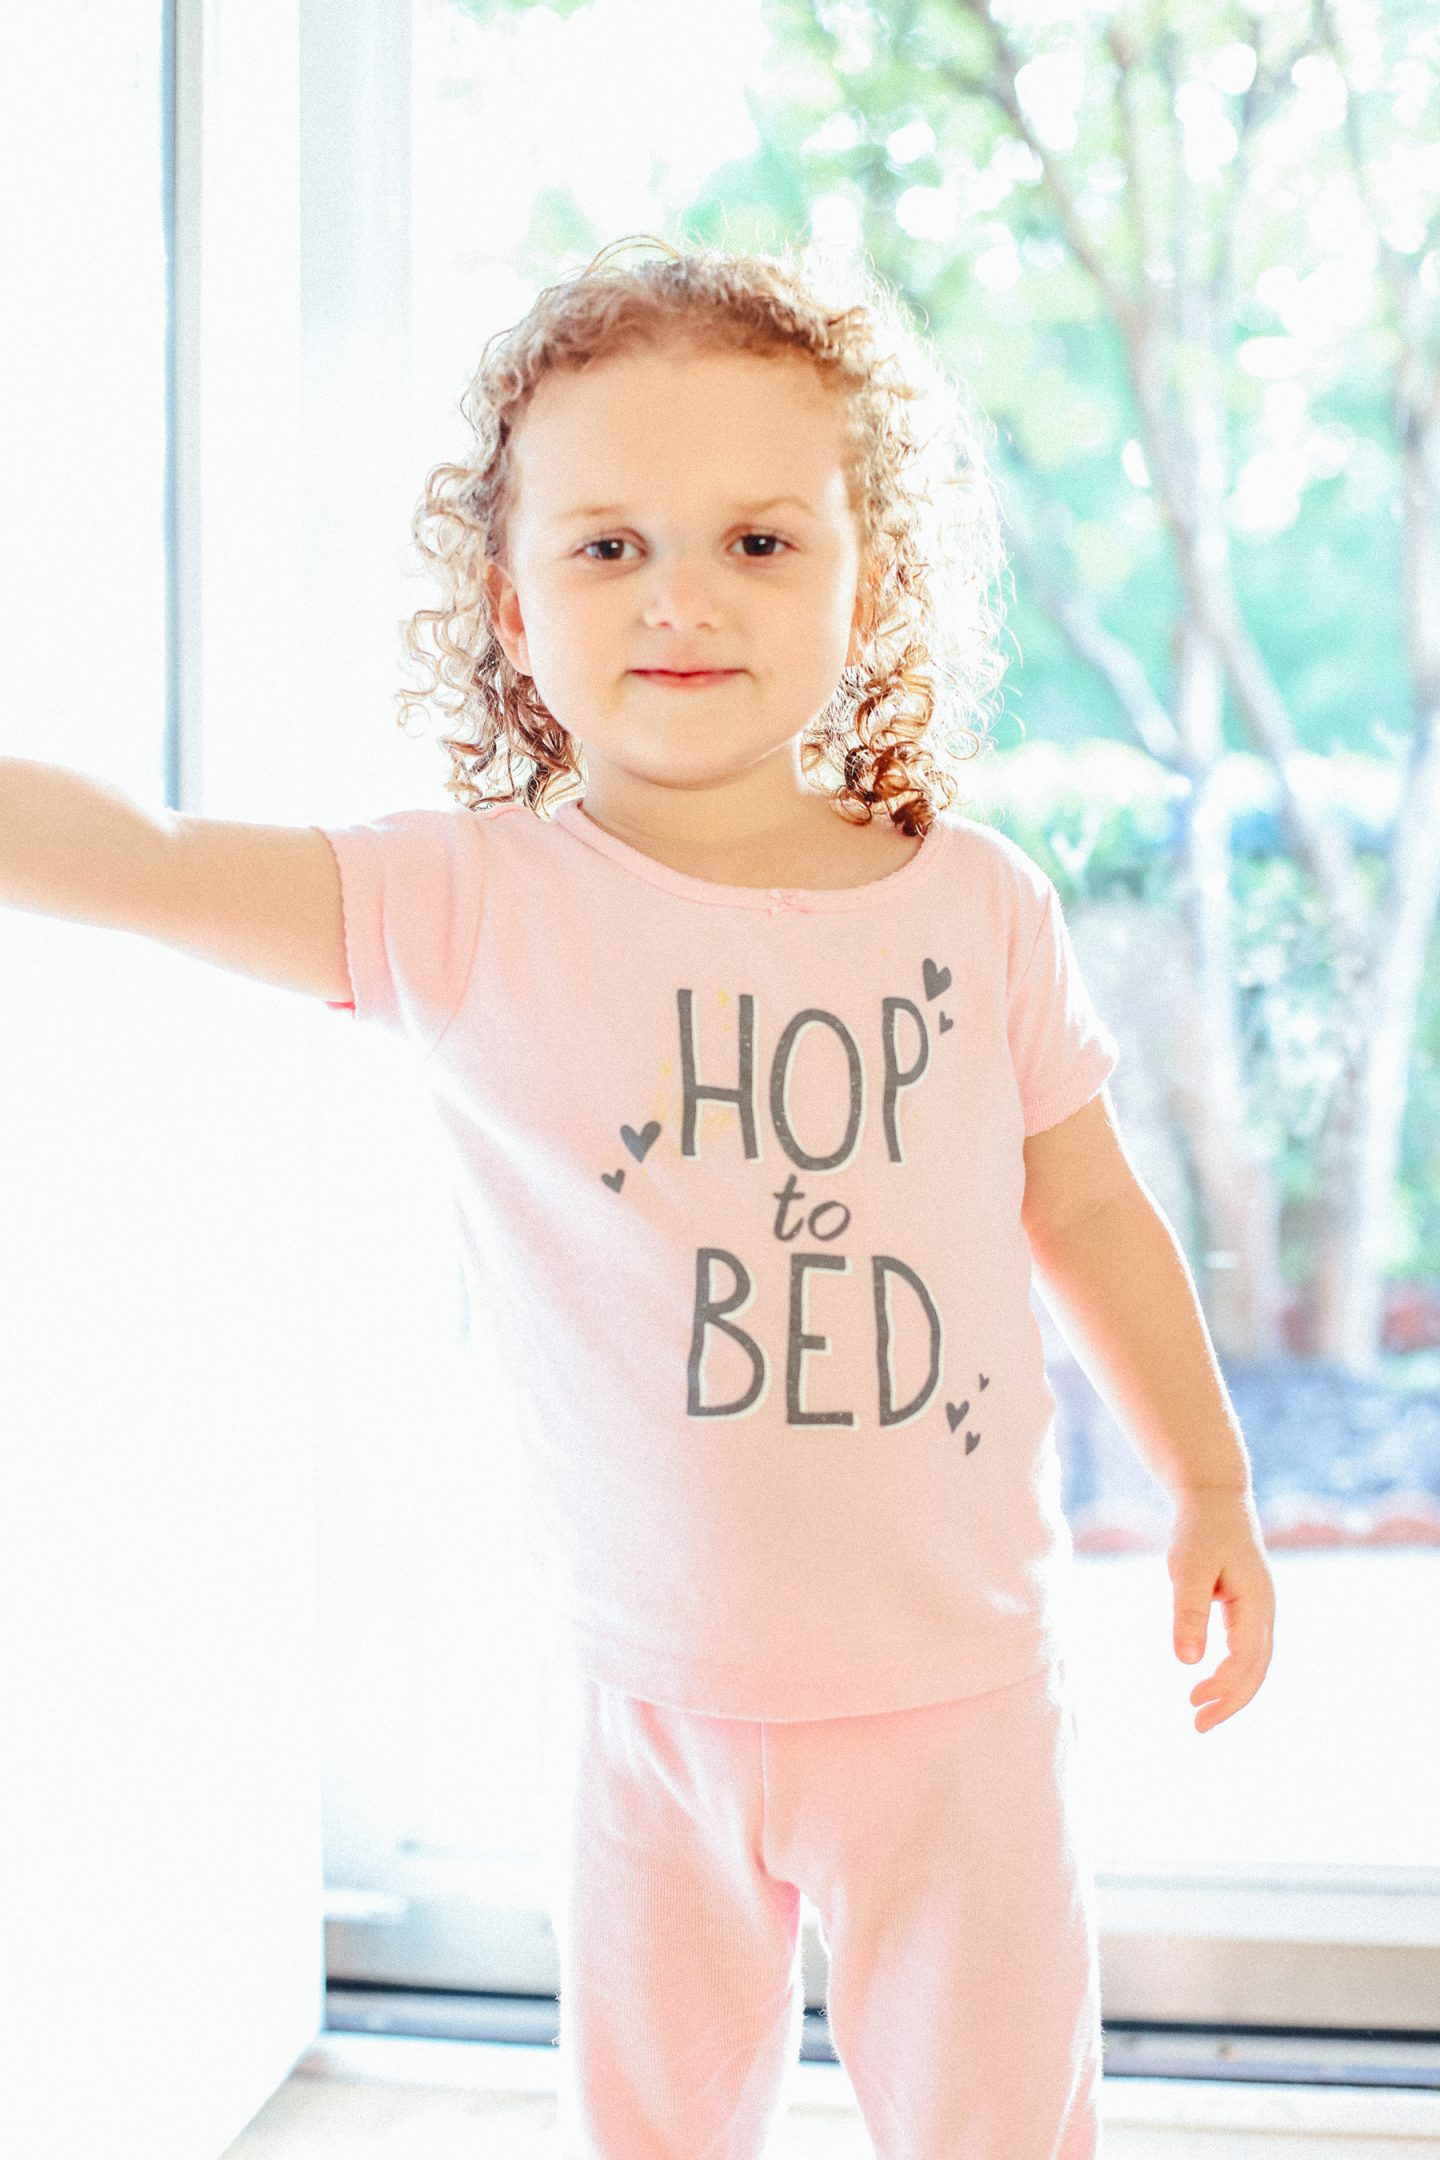 7 Healthy Bedtime Habits for Your Child